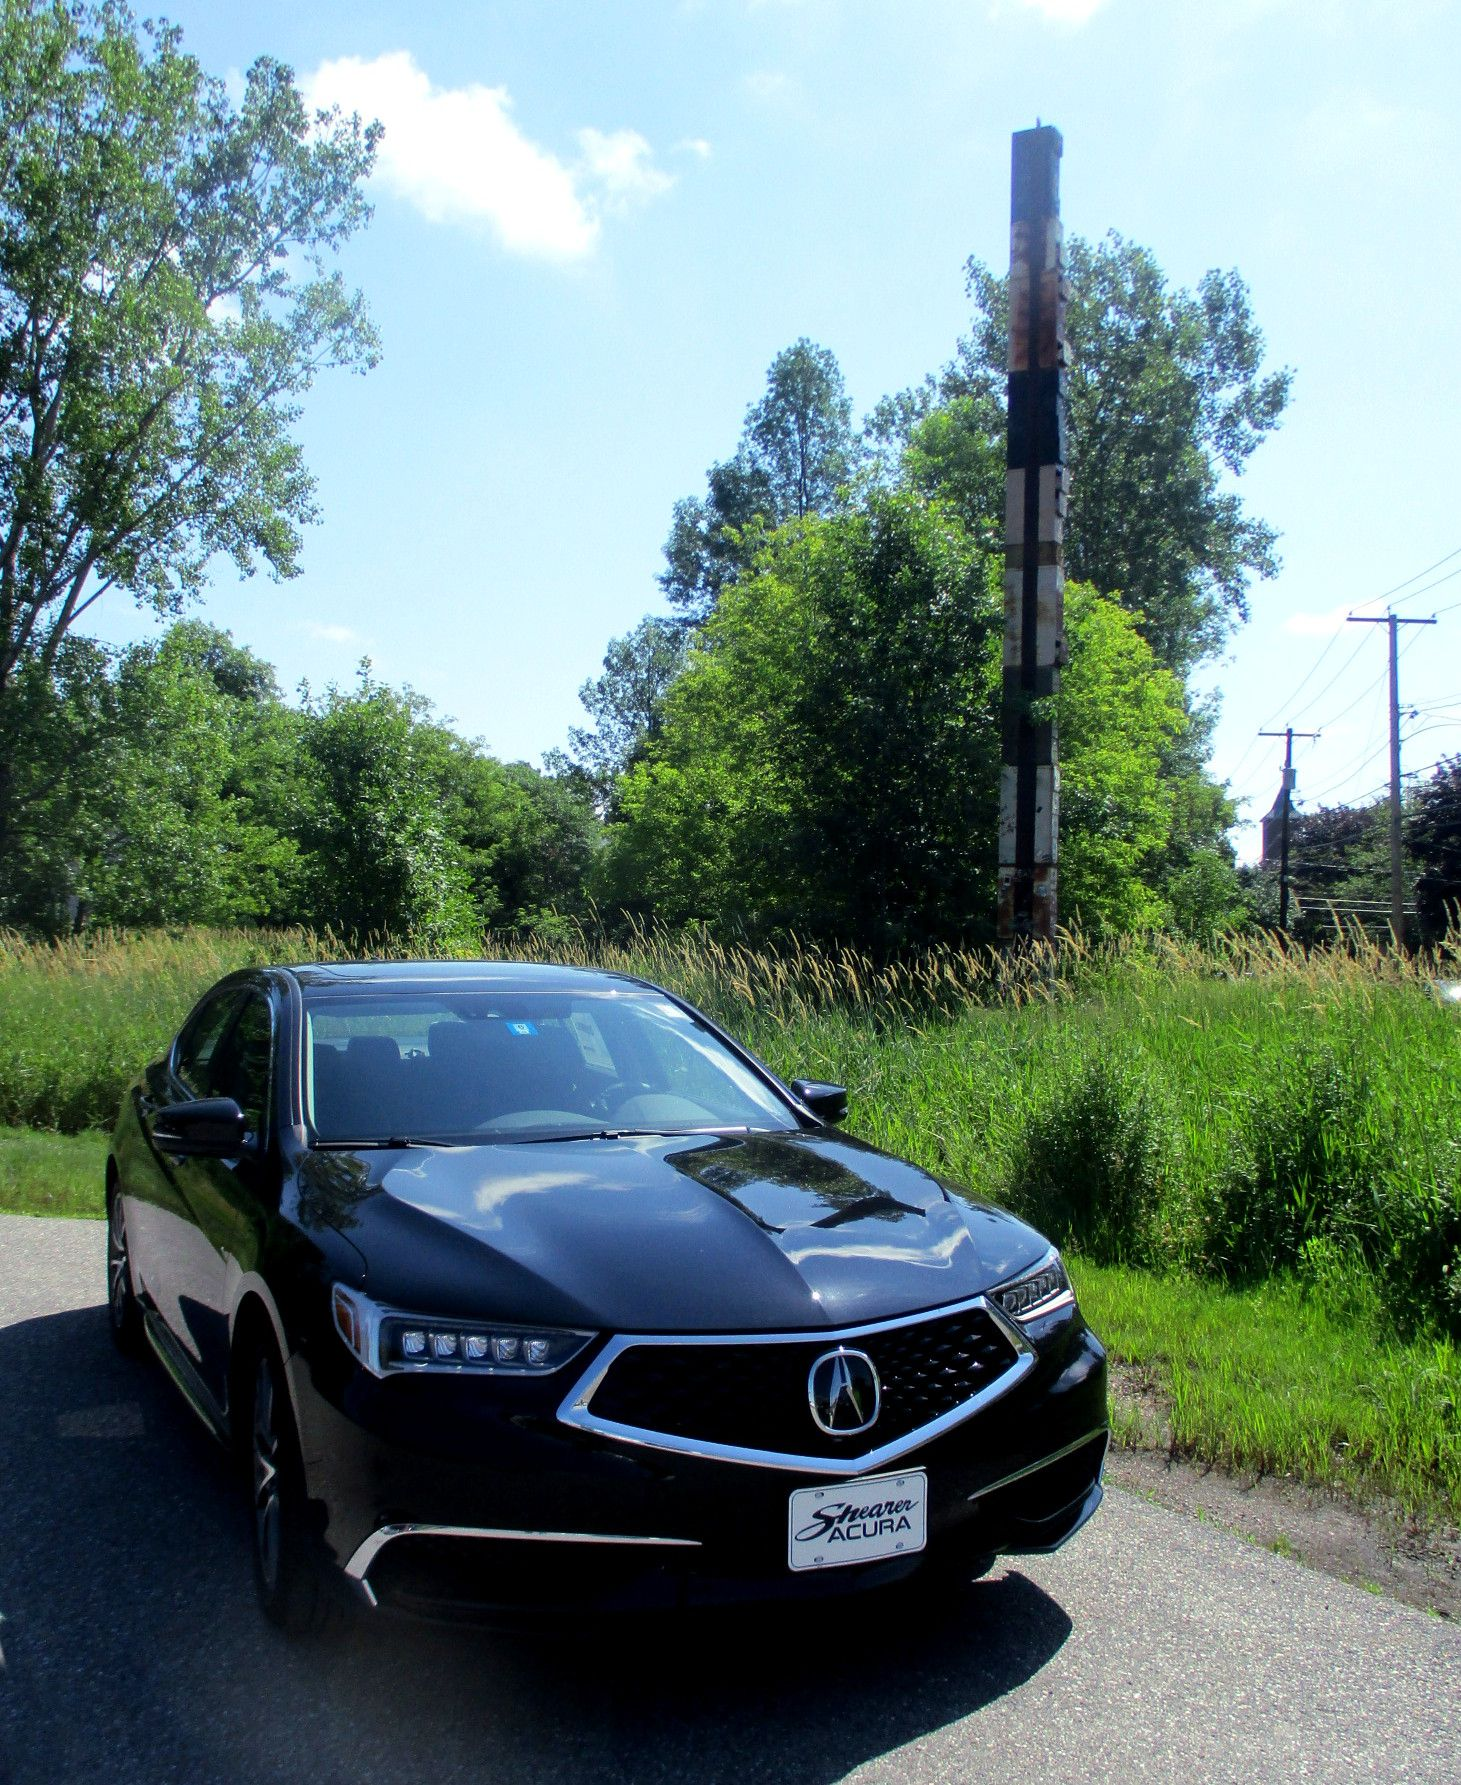 Nicole S 2018 Acura Tlx A Spec Acura Connected: Vermont Is Full Of The Artful And Unique. Compliment It